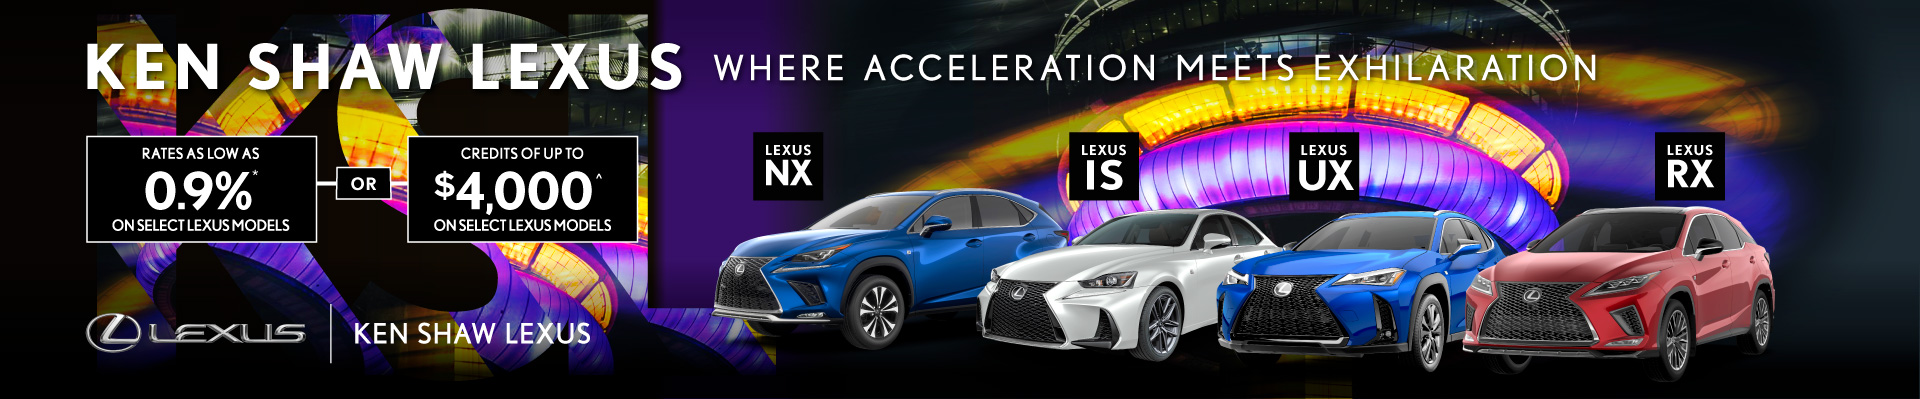 Ken Shaw Lexus offers, promotions, lease and finance, in Toronto, Ontario, GTA